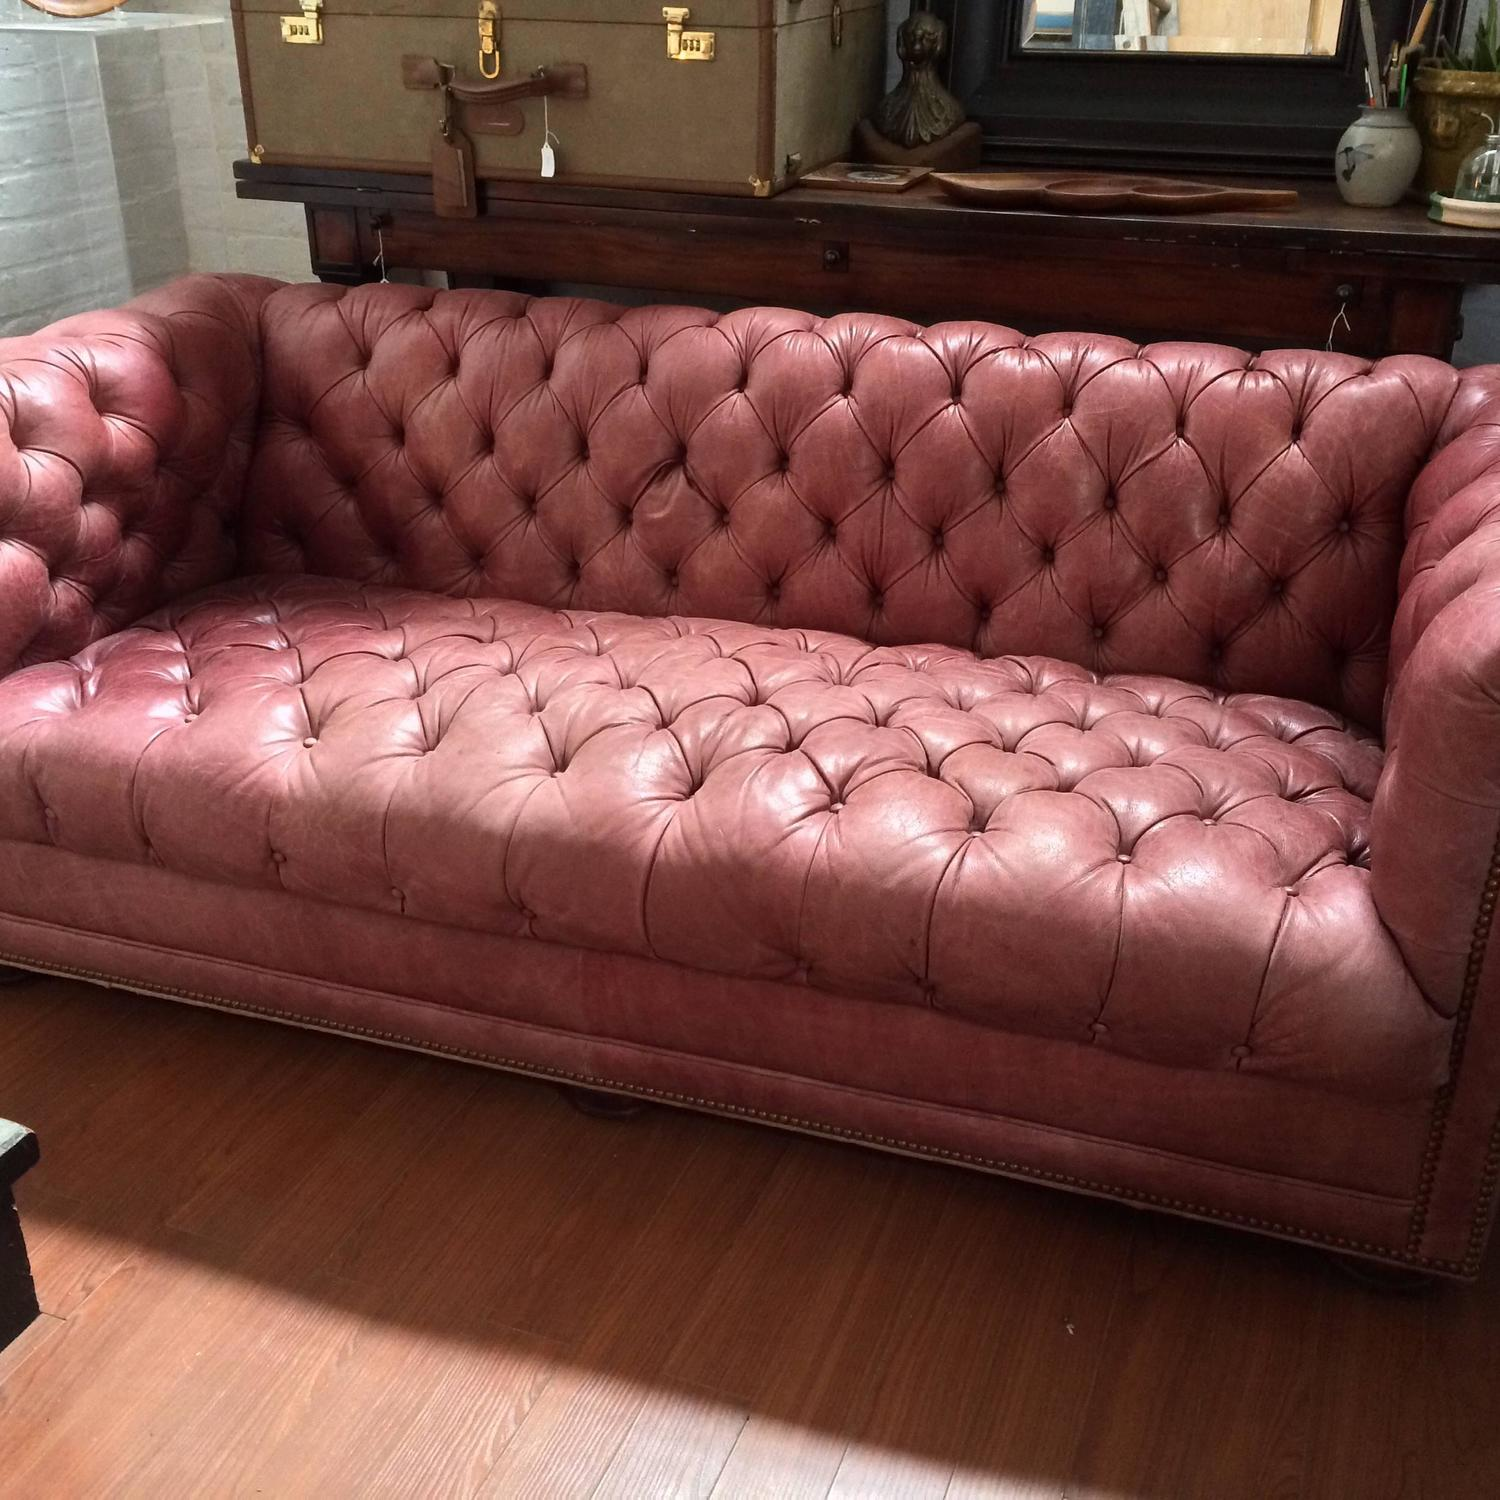 Tufted leather chesterfield sofa for sale at 1stdibs for Tufted couches for sale